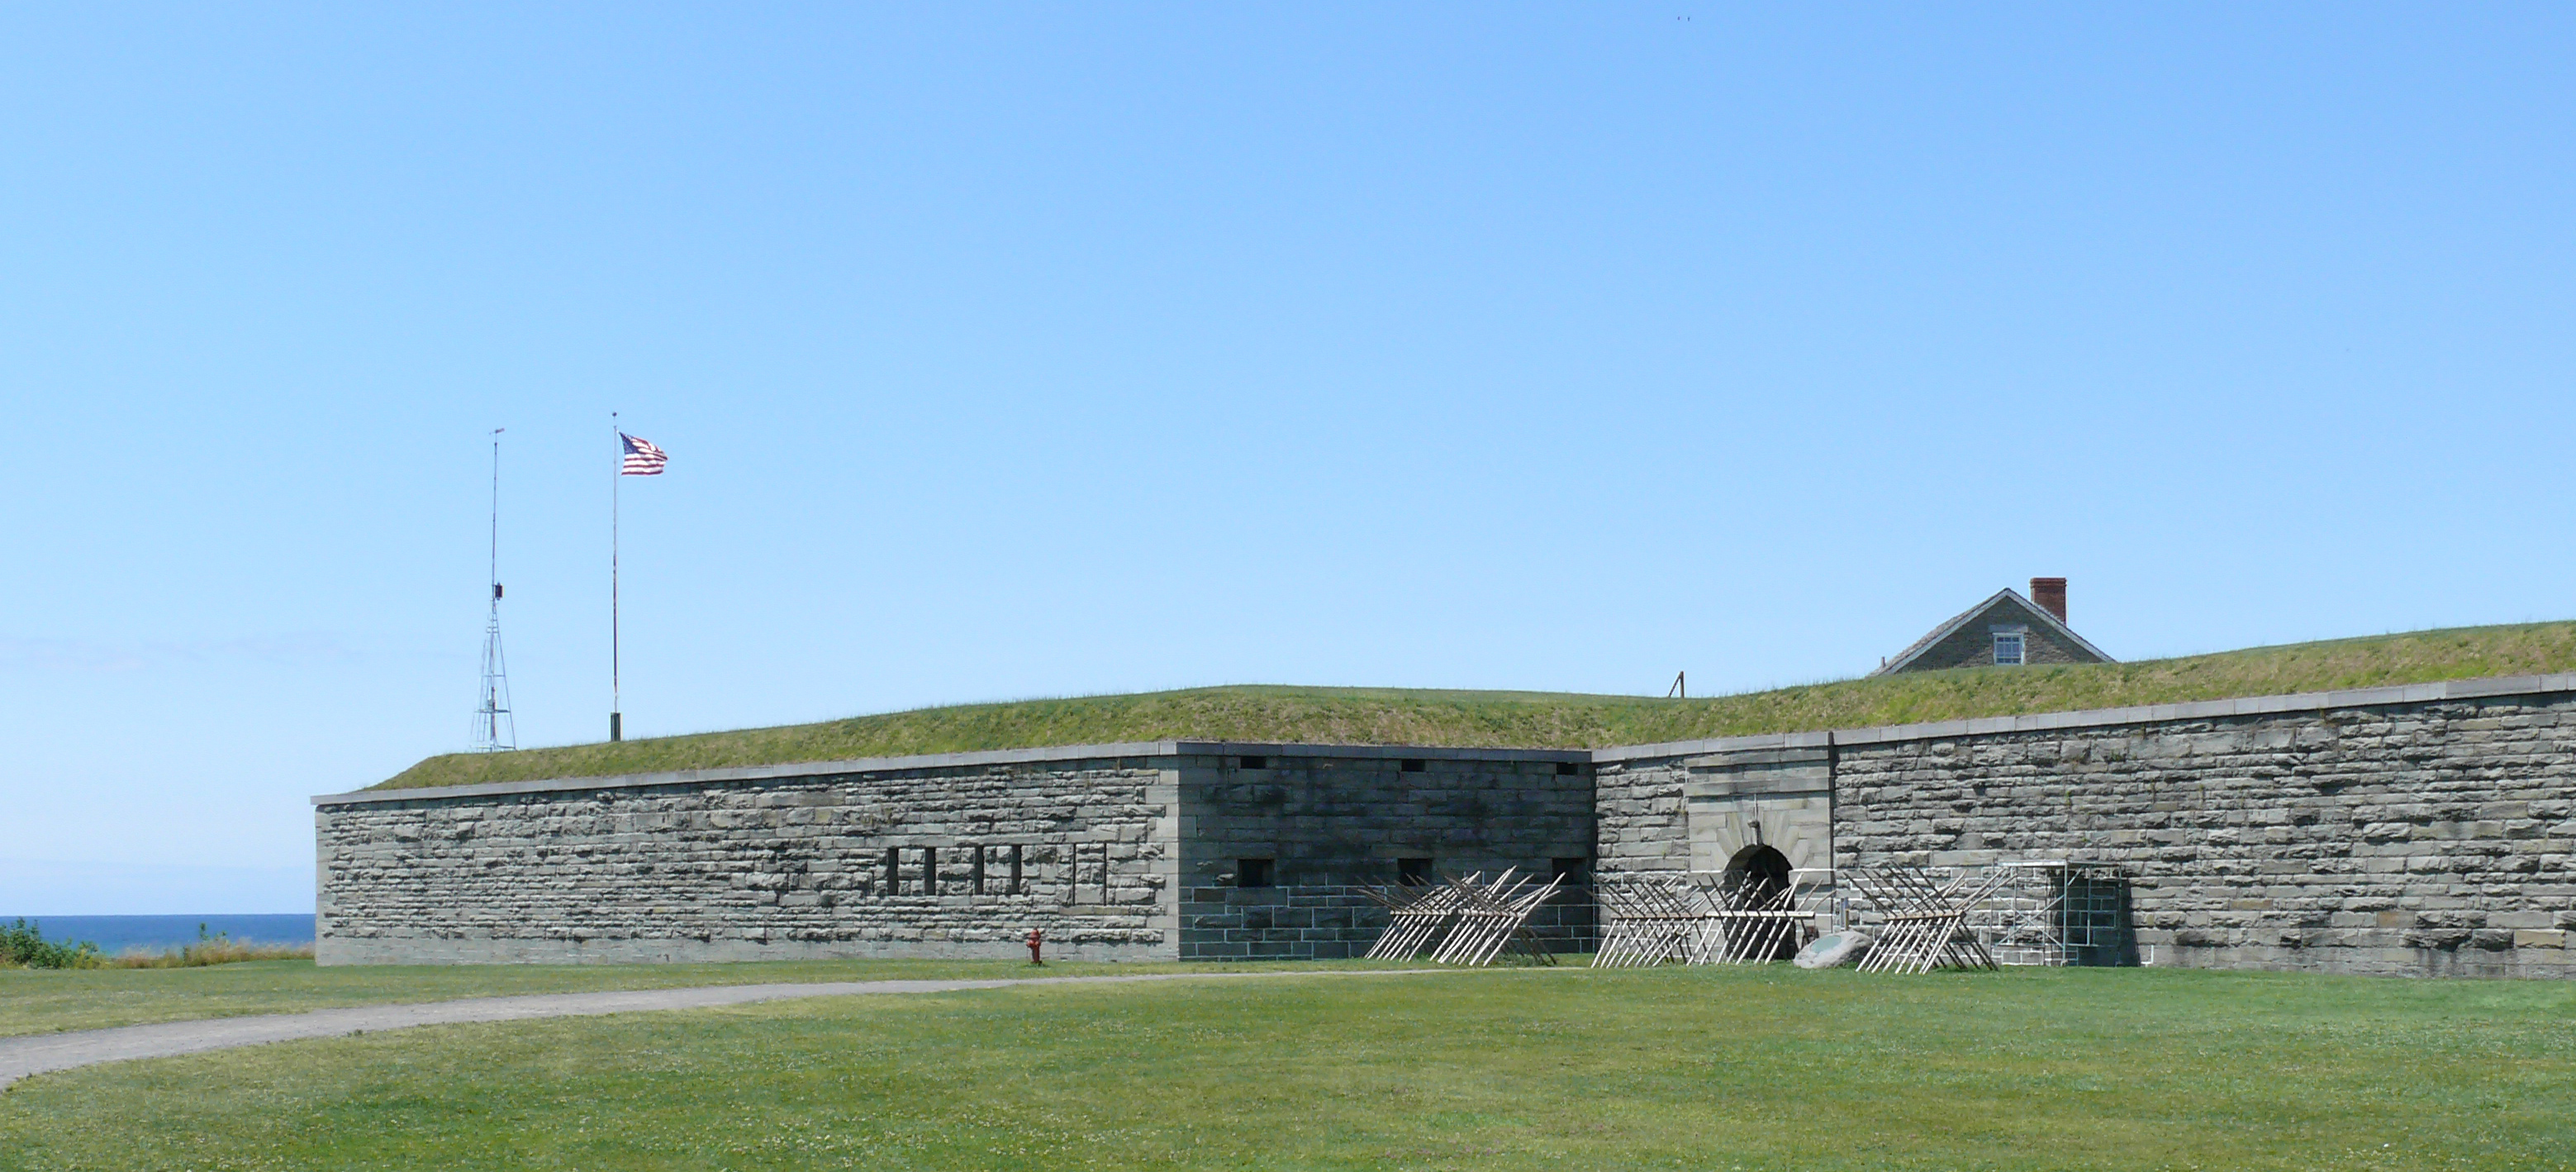 Ontario (NY) United States  city images : fort ontario, New York, United States What happens in fort ontario ...